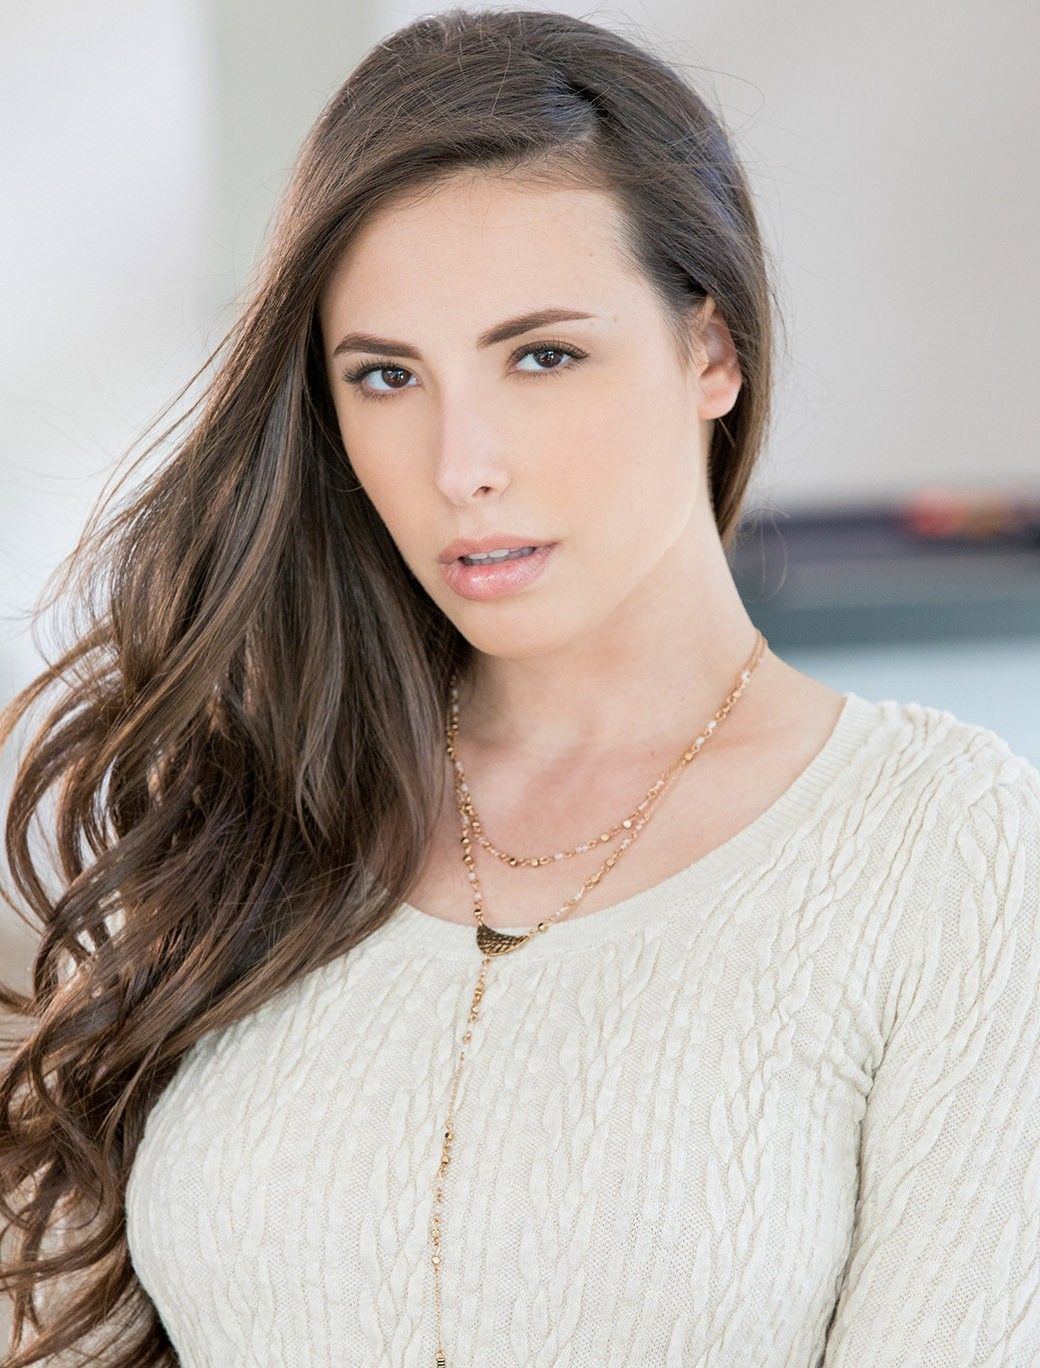 Casey Calvert (actress) nude photos 2019